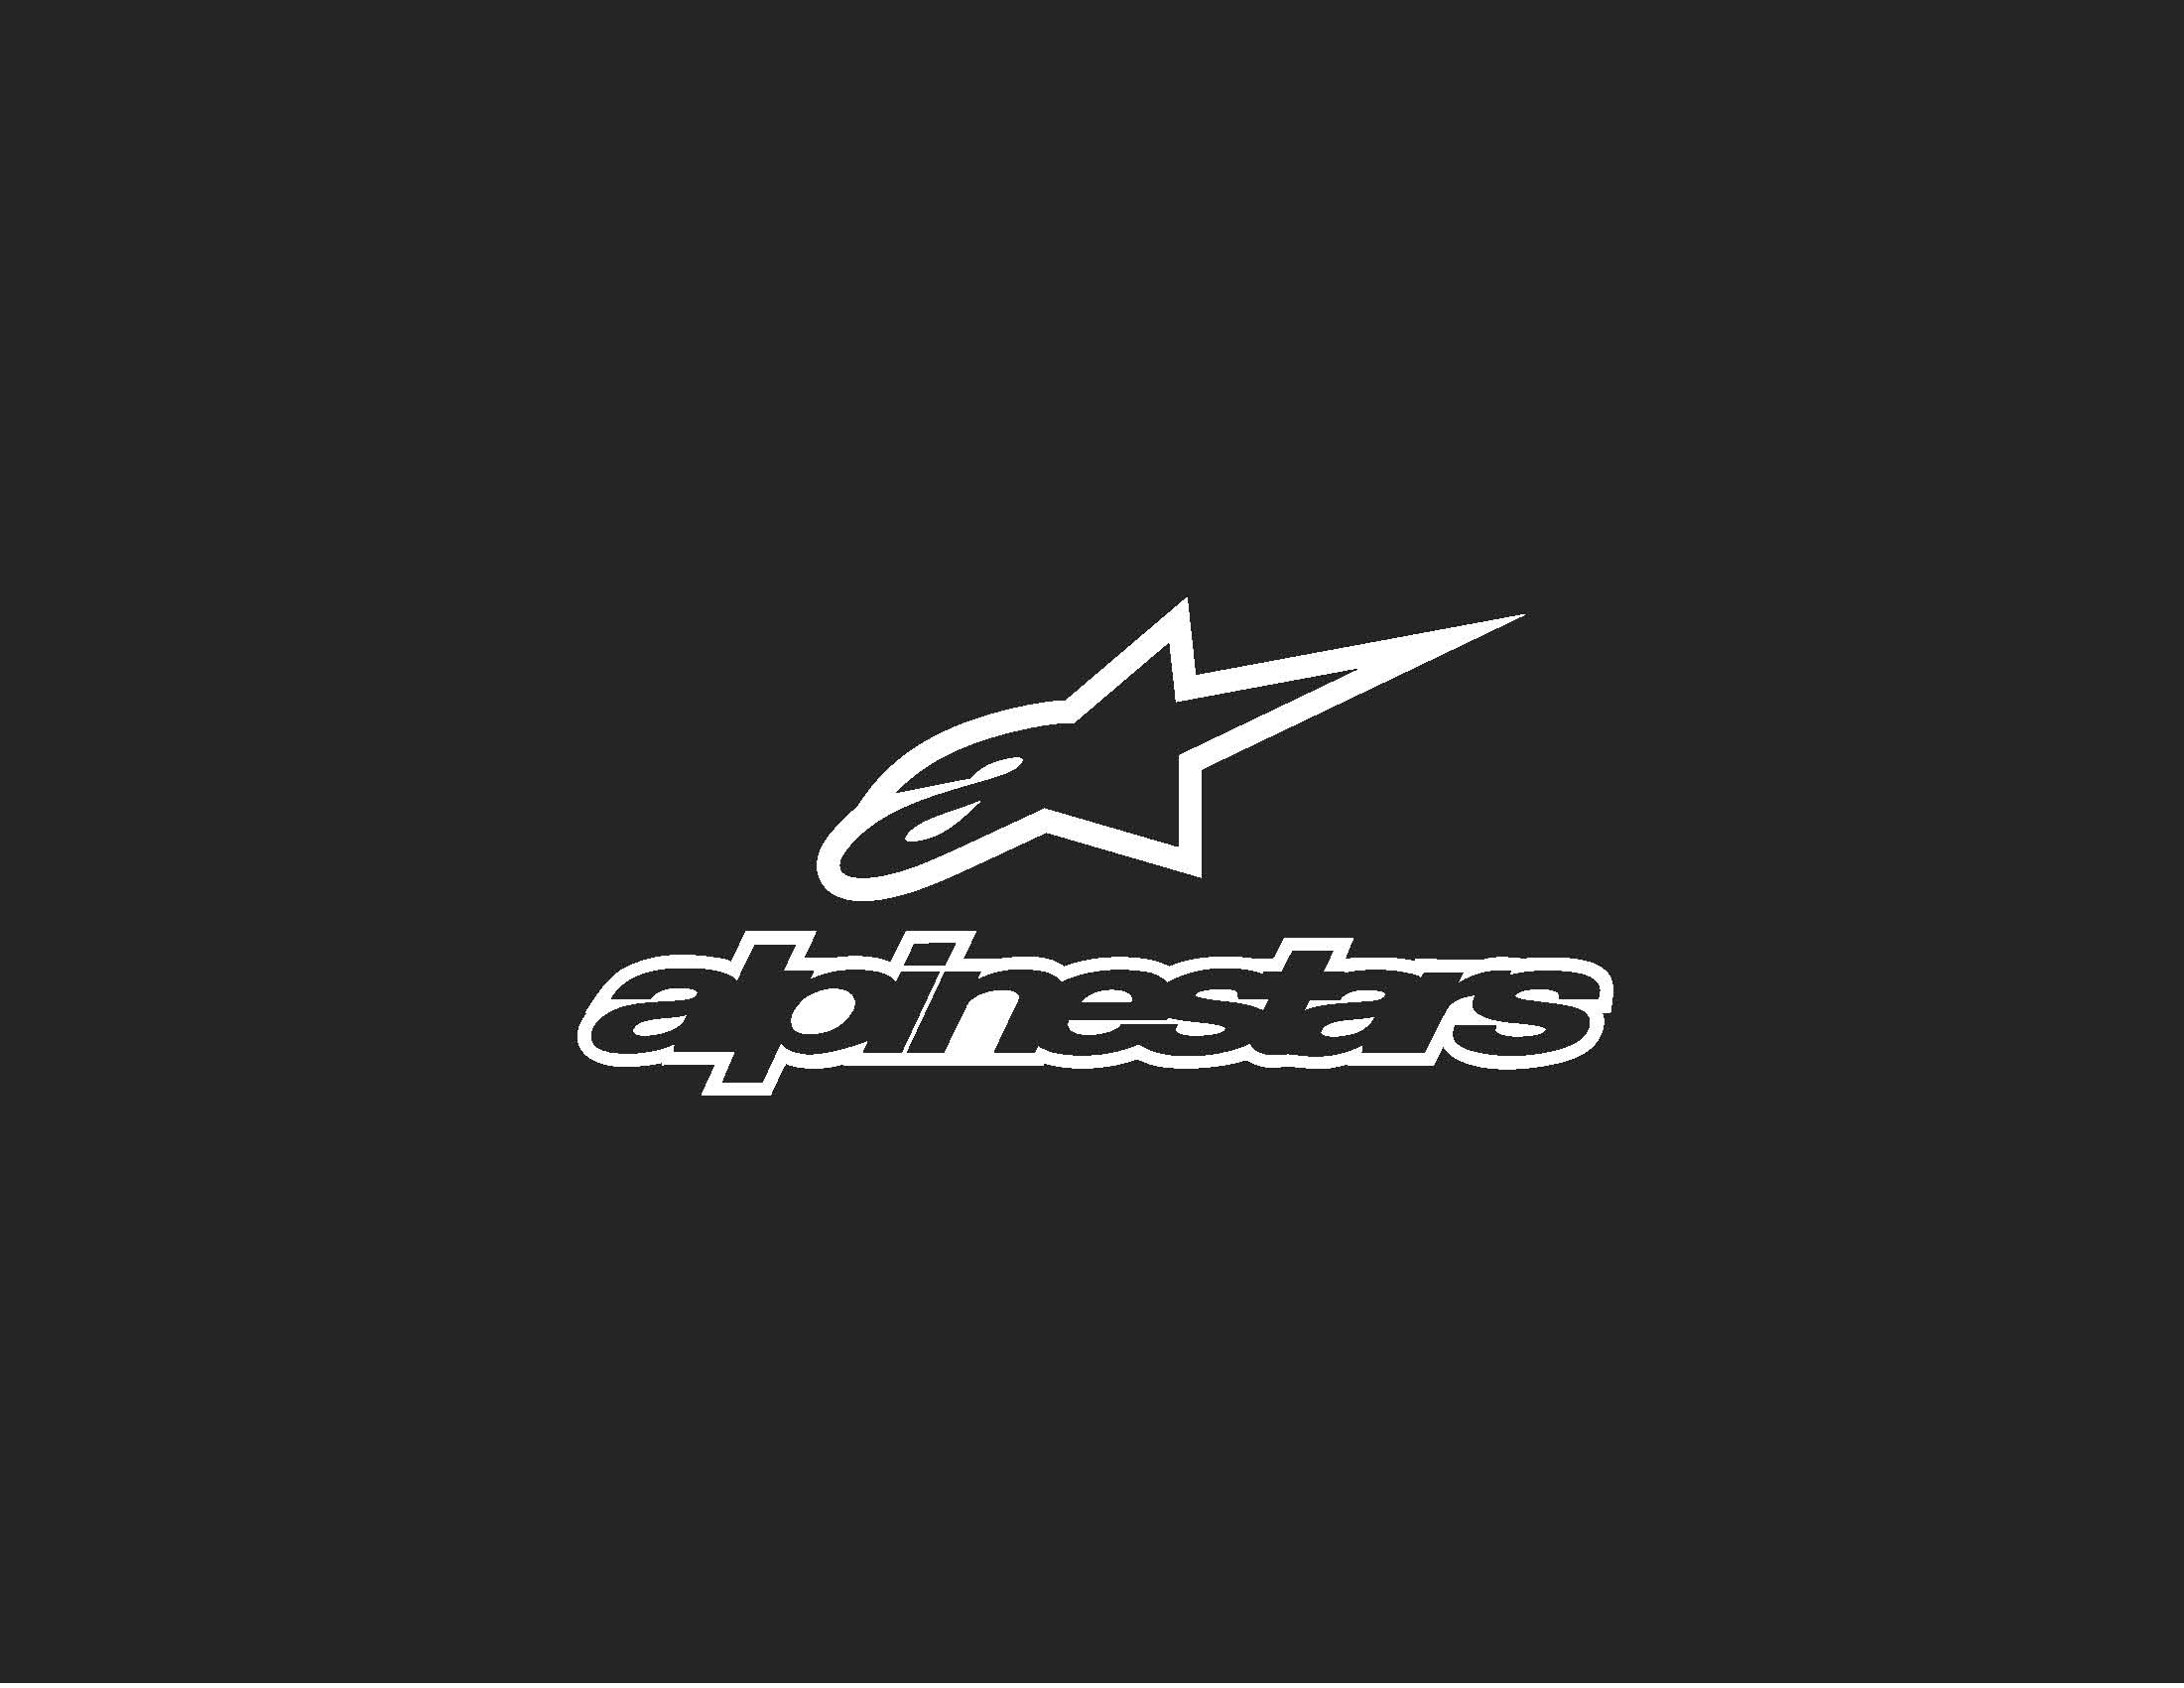 Alpinestar Logo Wallpaper Alpinestars cycling 2201x1701